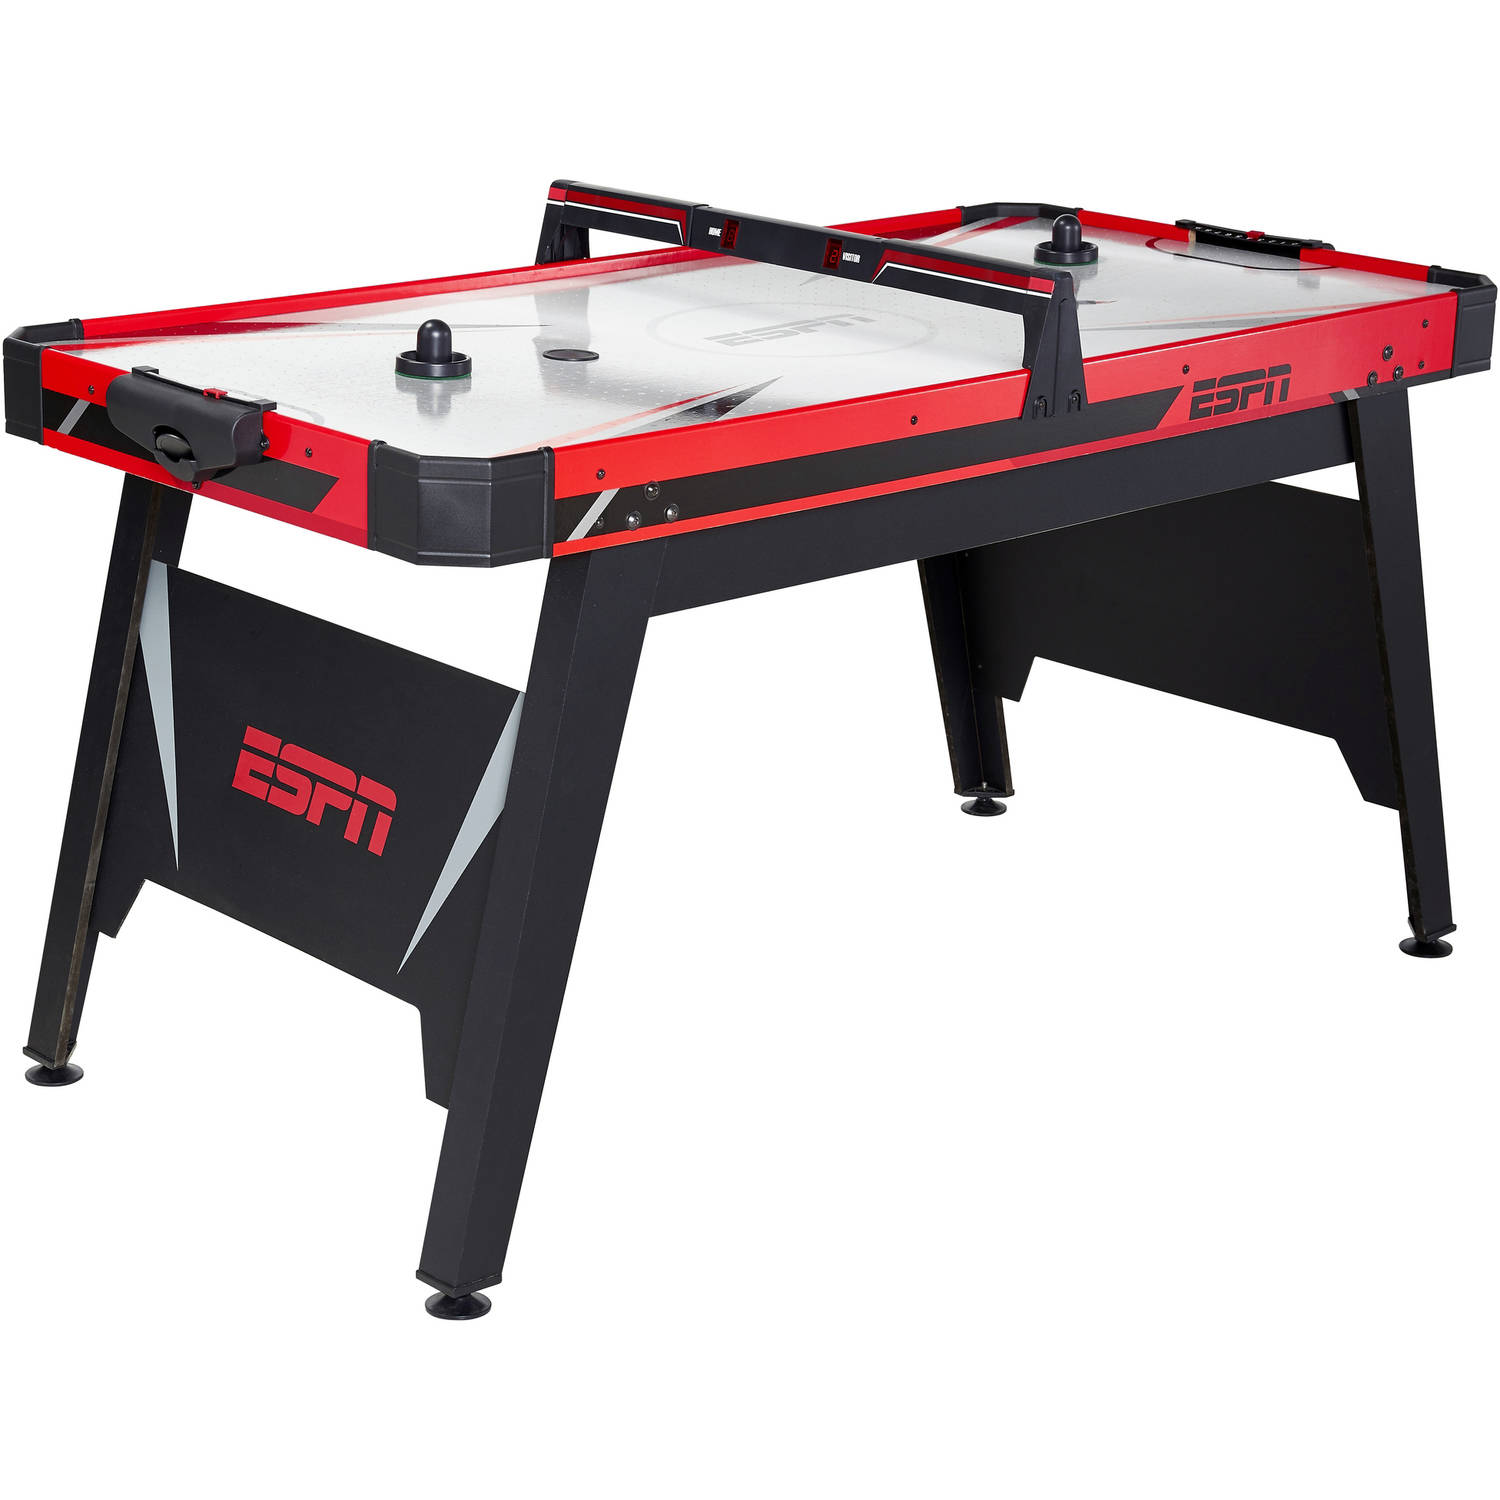 ESPN 60 Inch Air Powered Hockey Table with Overhead Electronic Scorer, Includes 2 pushers and 2 pucks, Black/Red